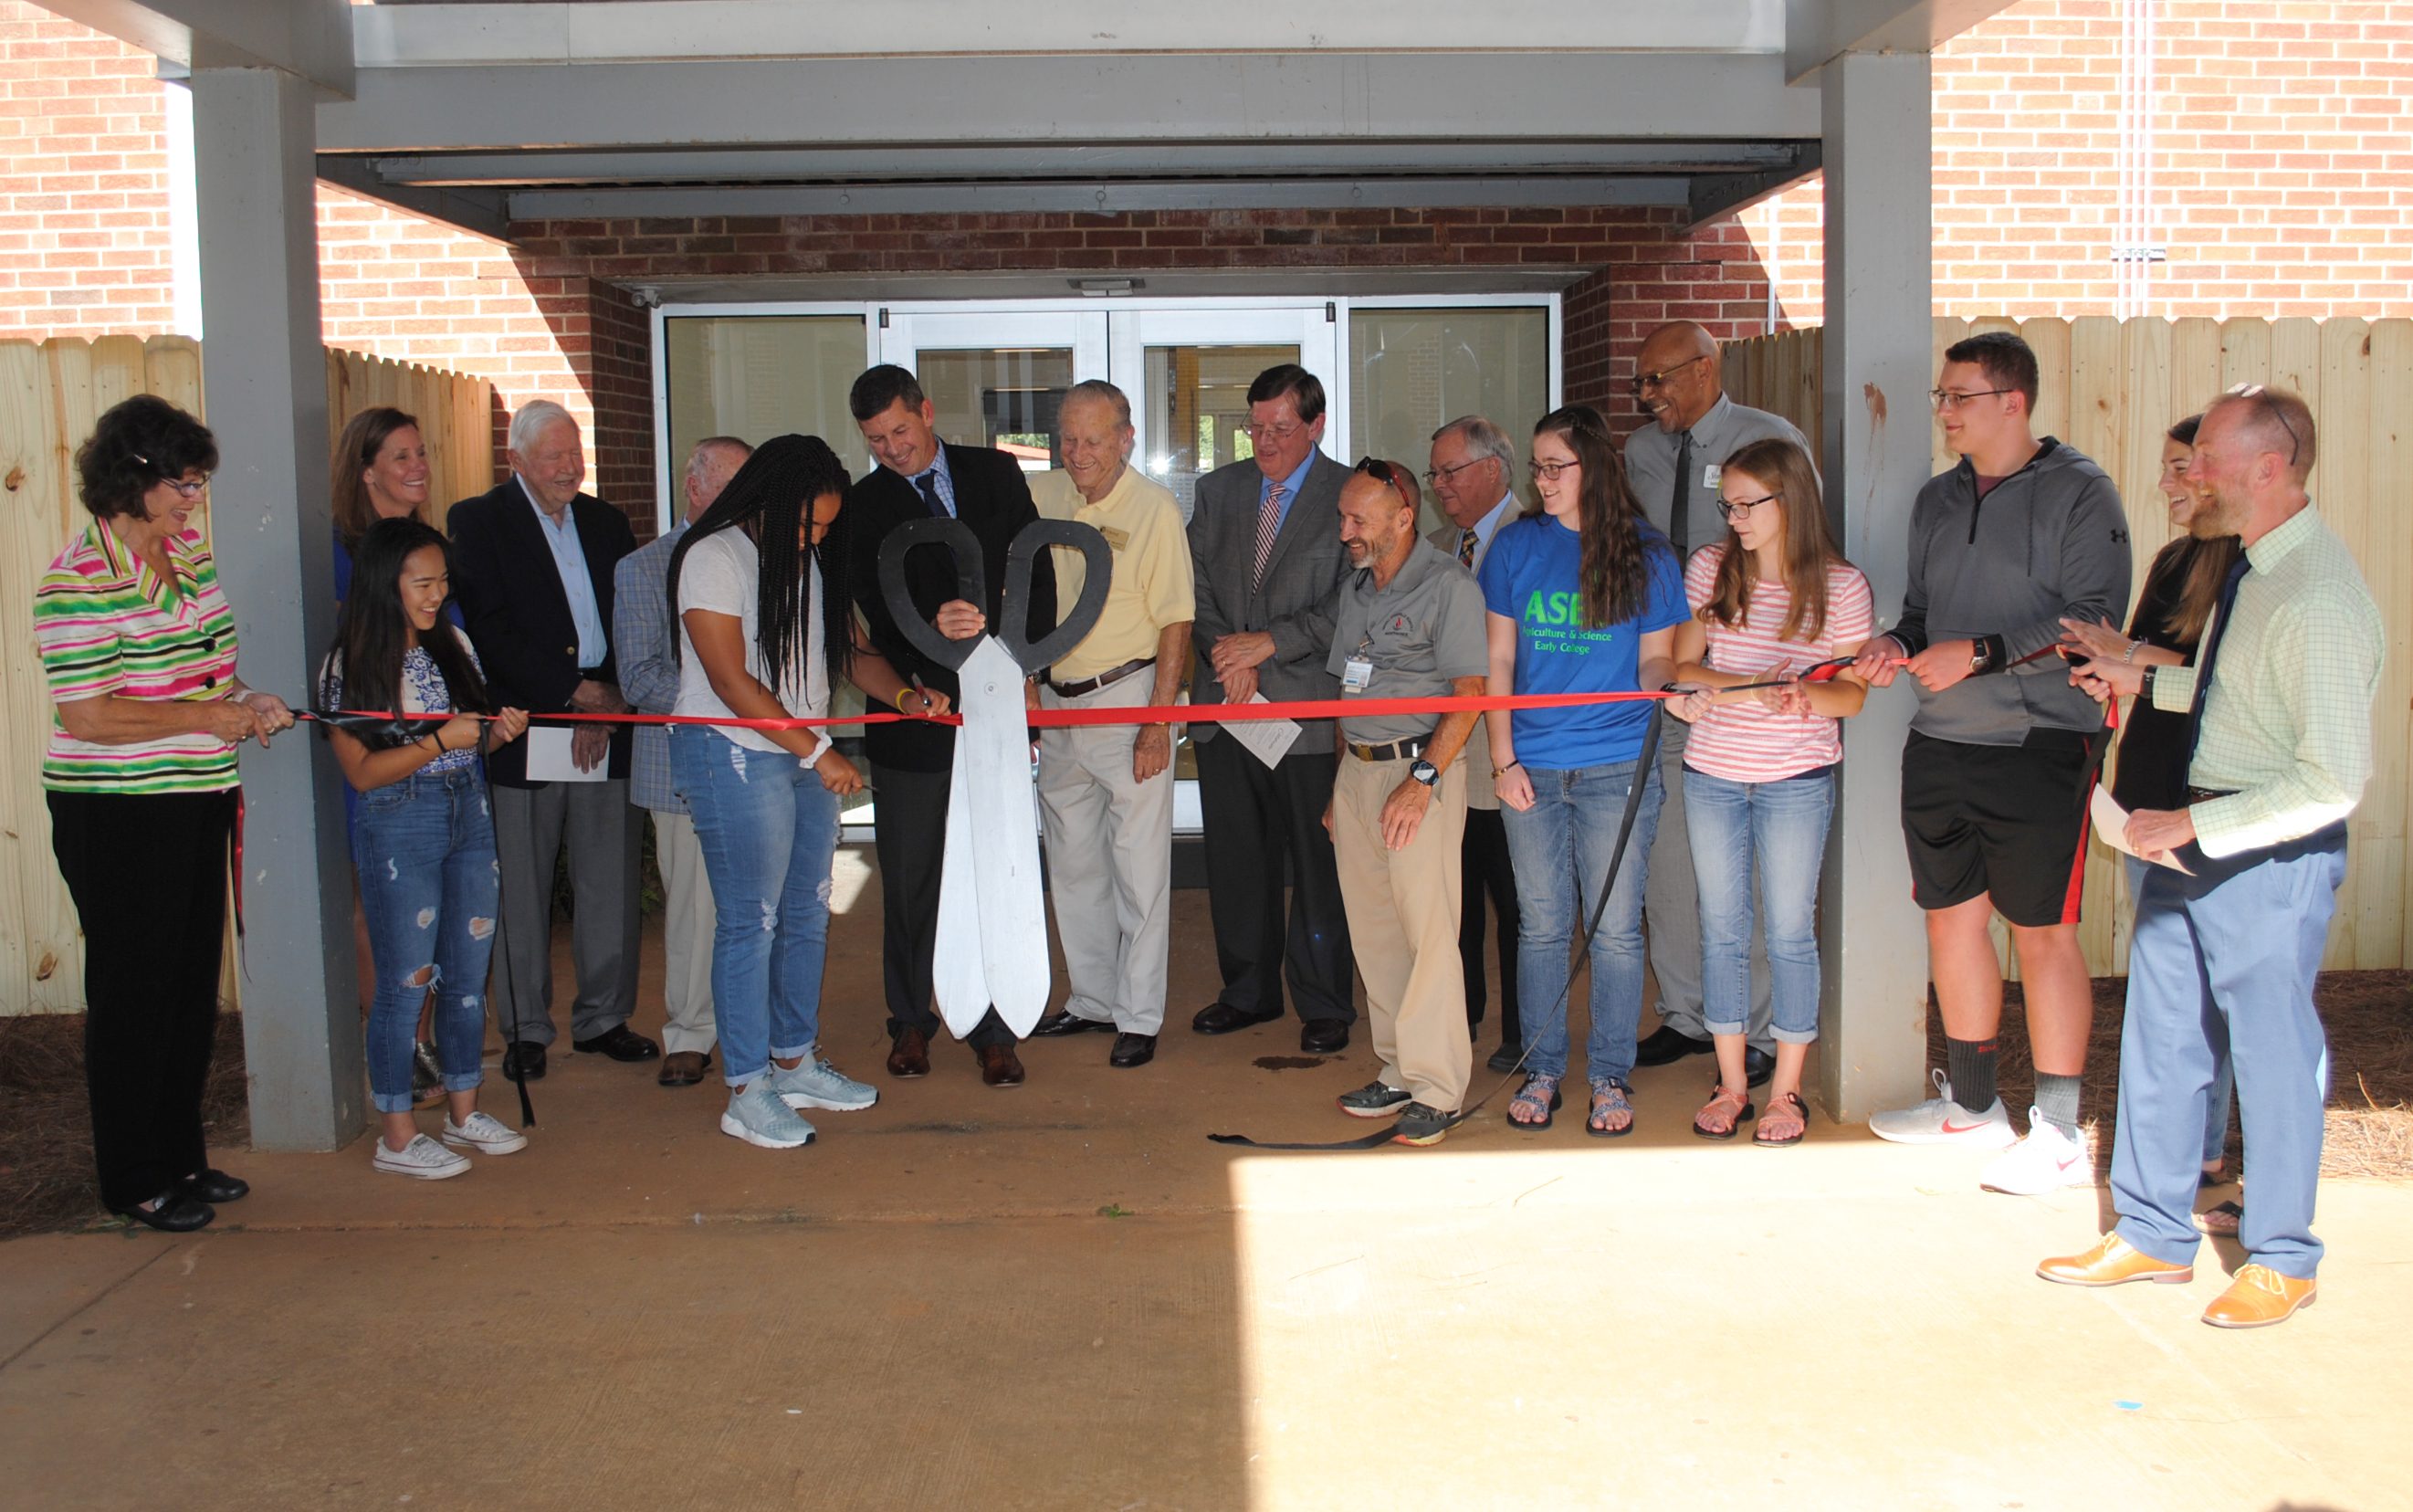 Officials from Mitchell Community College, Iredell-Statesville Schools, North Iredell High School (NIHS), the Agriculture & Science Early College (ASEC) faculty/staff and students along with representatives from local and state government celebrate the ribbon cutting of Mitchell's North Iredell Center.